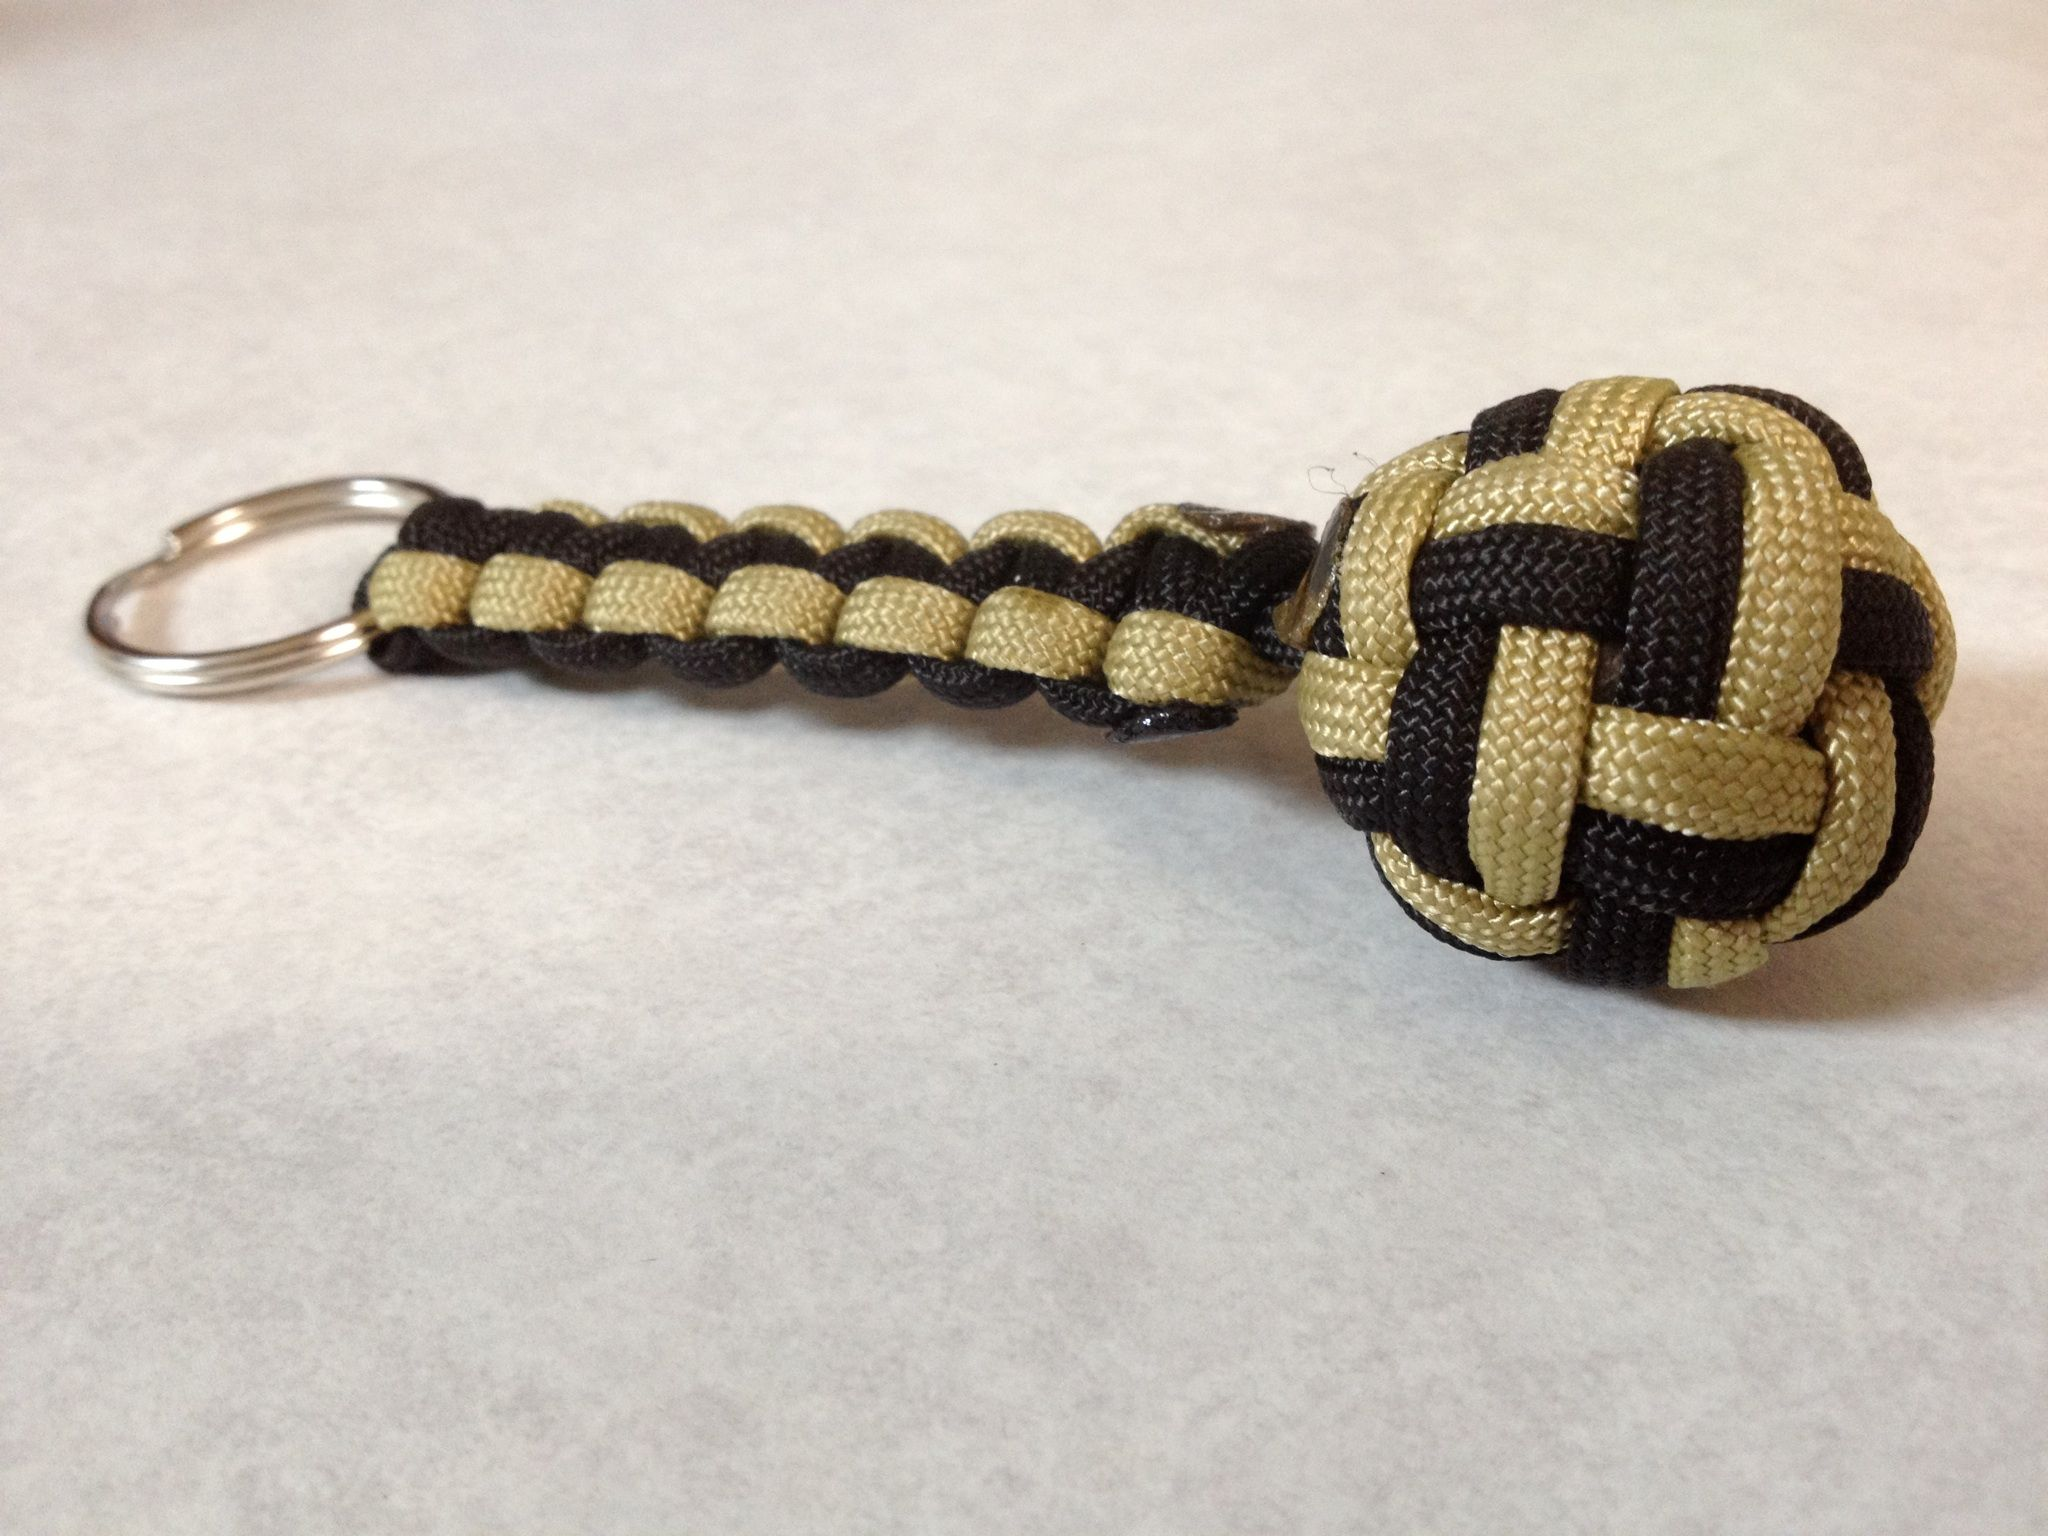 Paracord globe knot keychain for Paracord keychain projects